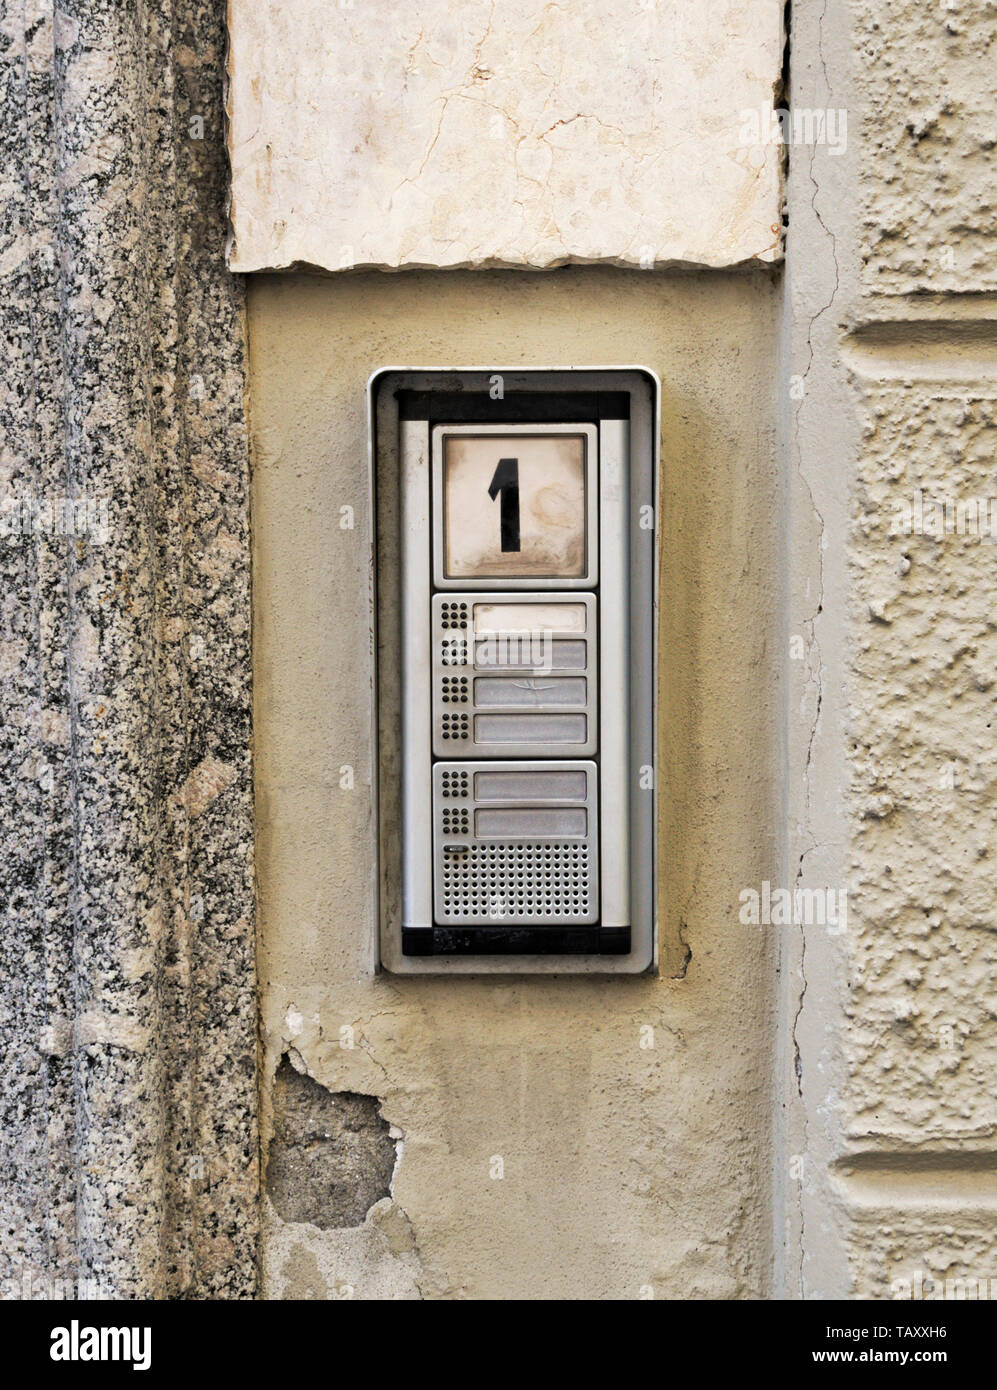 door buzzers of a house number 1, Italy - Stock Image